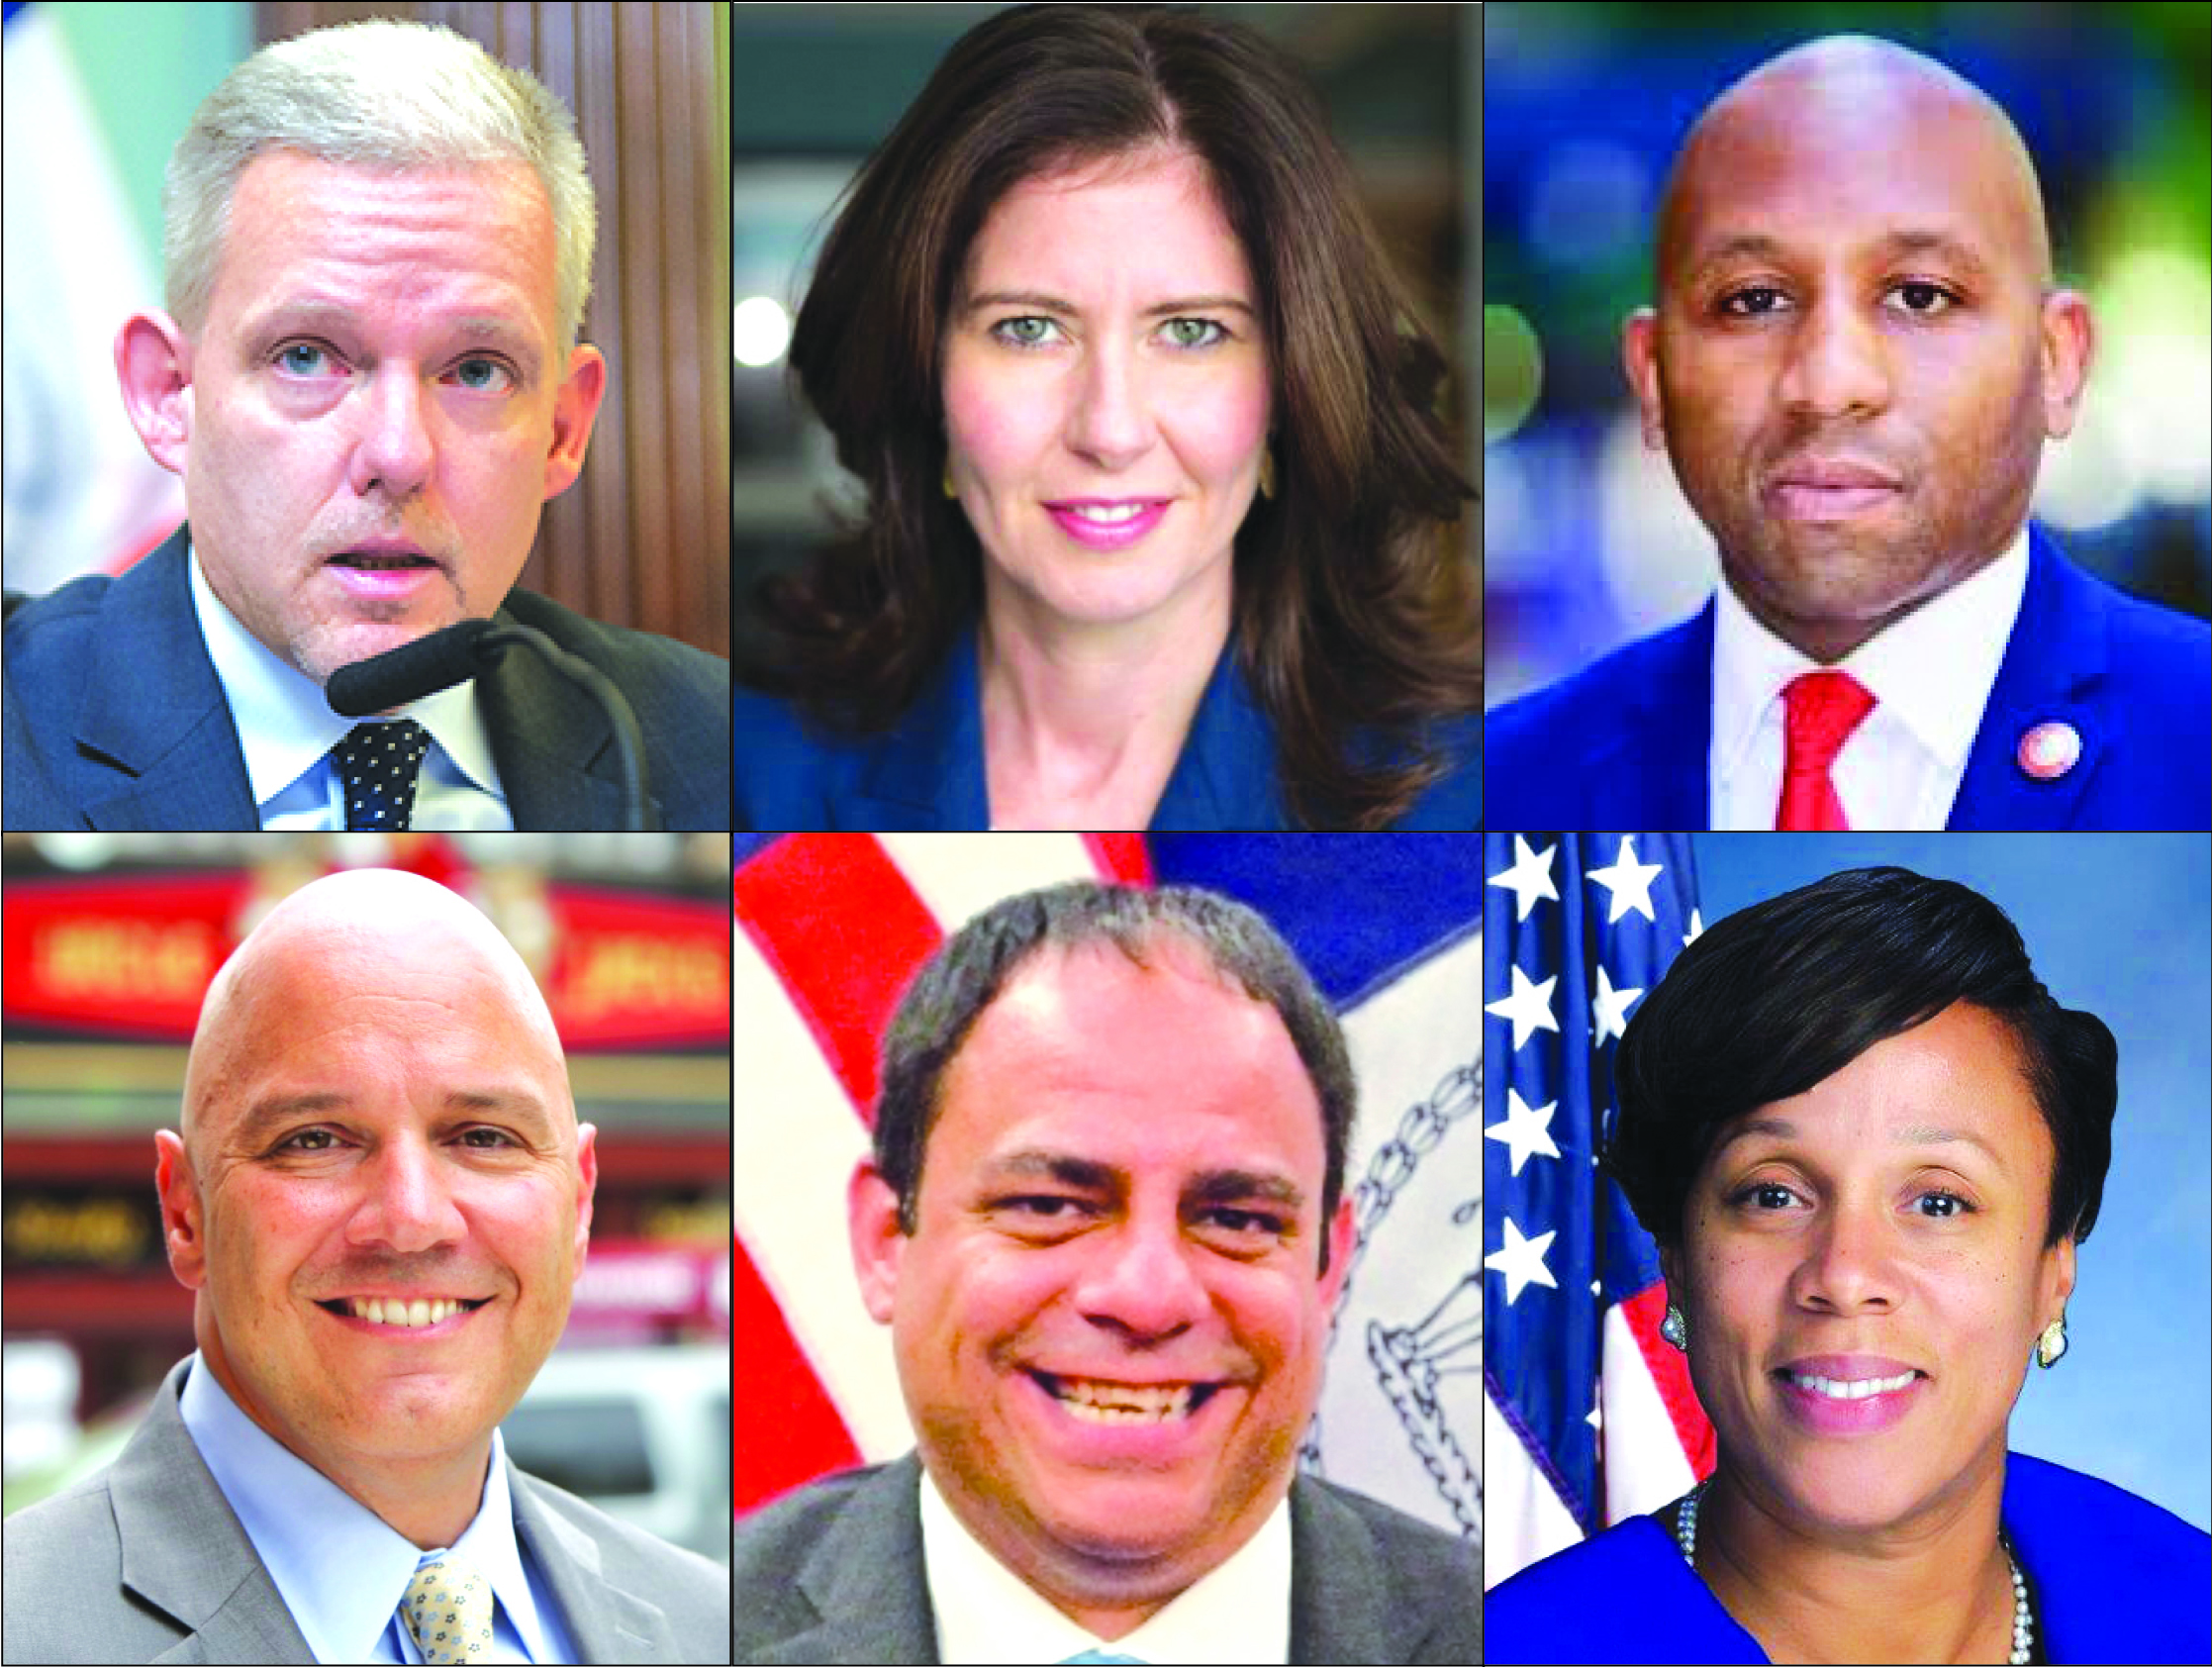 Councilmember Jimmy Van Bramer and Assemblymember Alicia Hyndman have announced their candidacies for Queens Borough President. Former Councilmember Elizabeth Crowley; Councilmembers Donovan Richards, Paul Vallone and Costa Constantinides are also expected to enter the race. Photos via City Council and state Assembly.